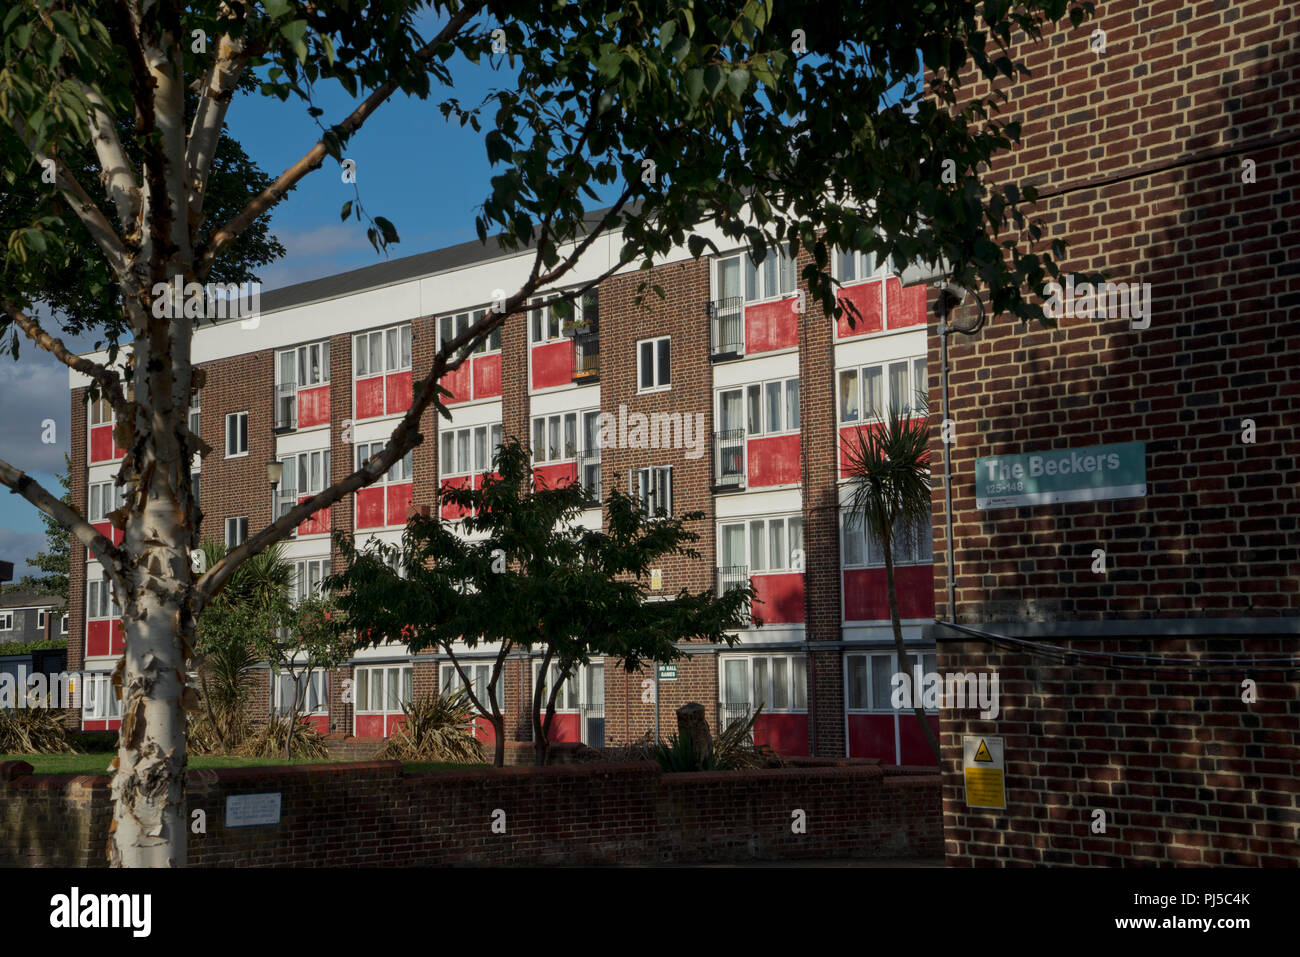 Run Down Council Housing Estate To Be Demolished To Build New Luxury  Housing Blocks In Hackney,London,England,UK